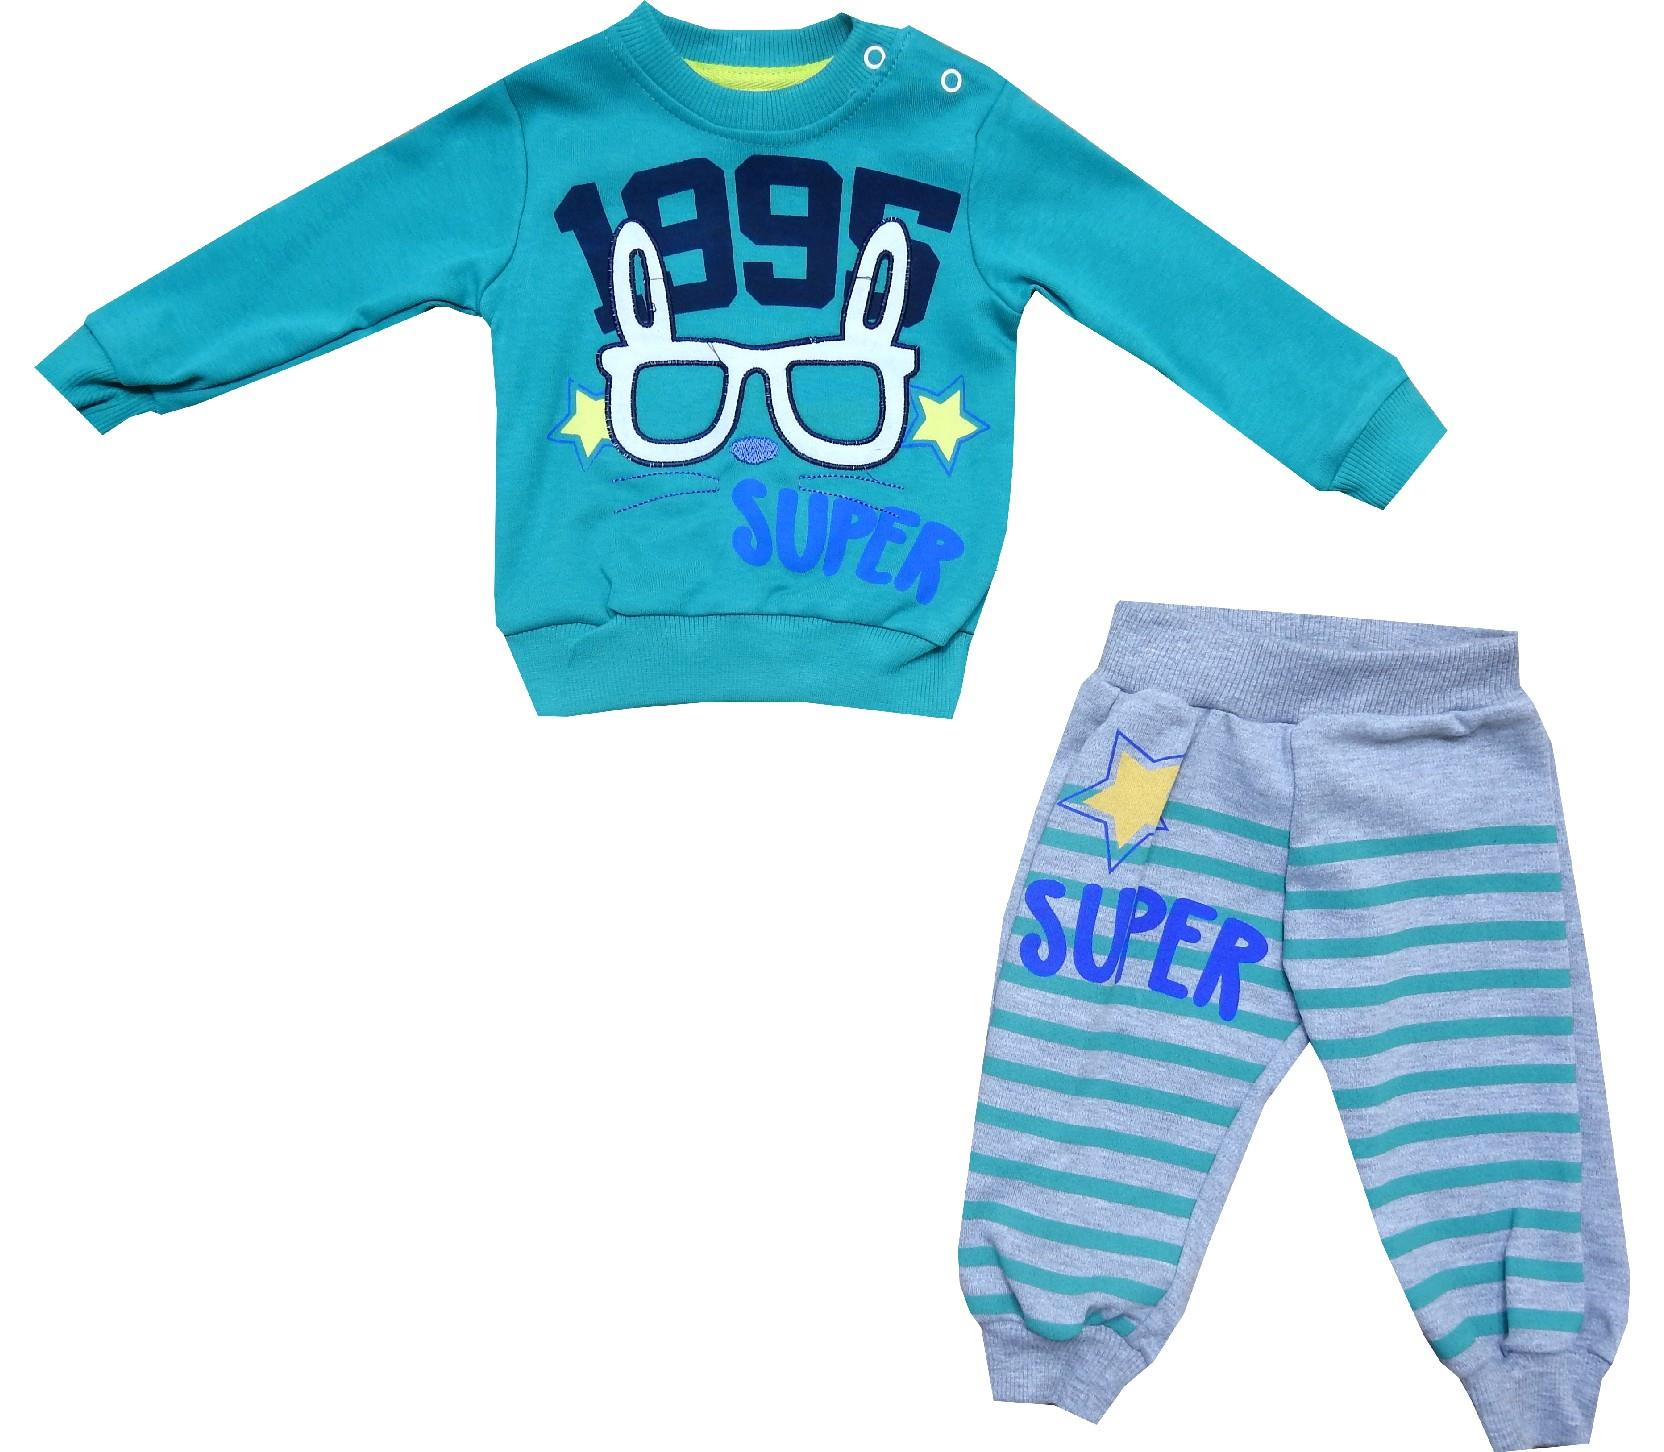 Wholesale 1995 print tracksuit for boy (9-12-18-24 month)